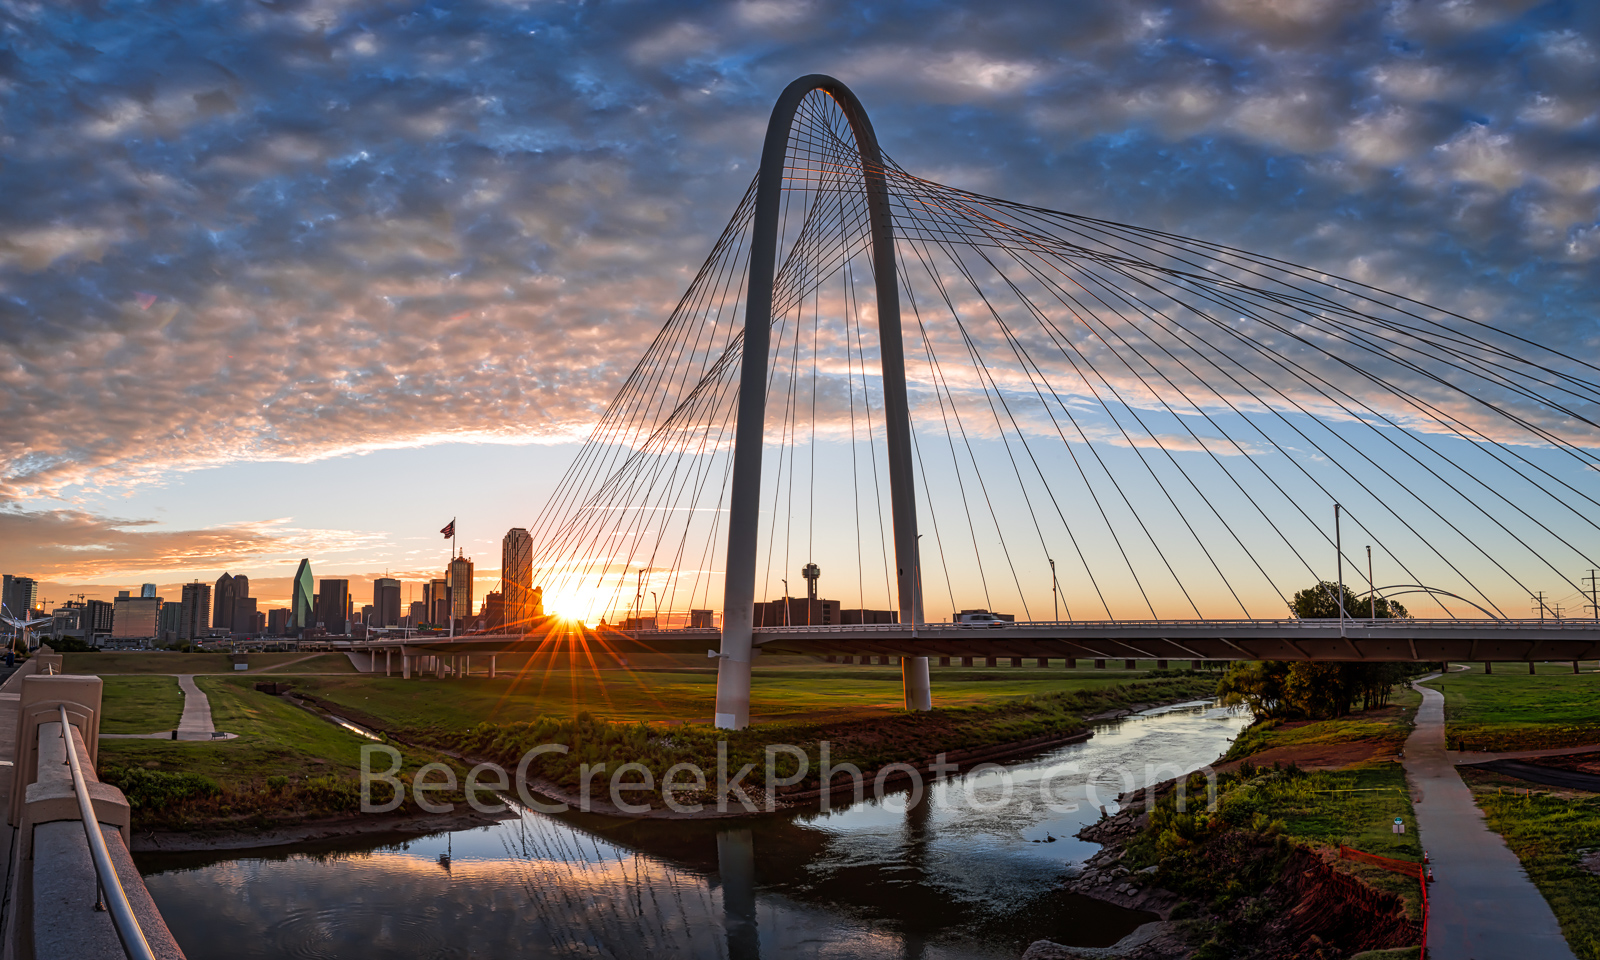 Dallas, sunrise, sun burst, morning, Margaret Hunt Hill Bridge, skyline, cityscape, clouds, color, pink, orange, iconic, bridge, 201, cities, city, panorama, pano, , photo